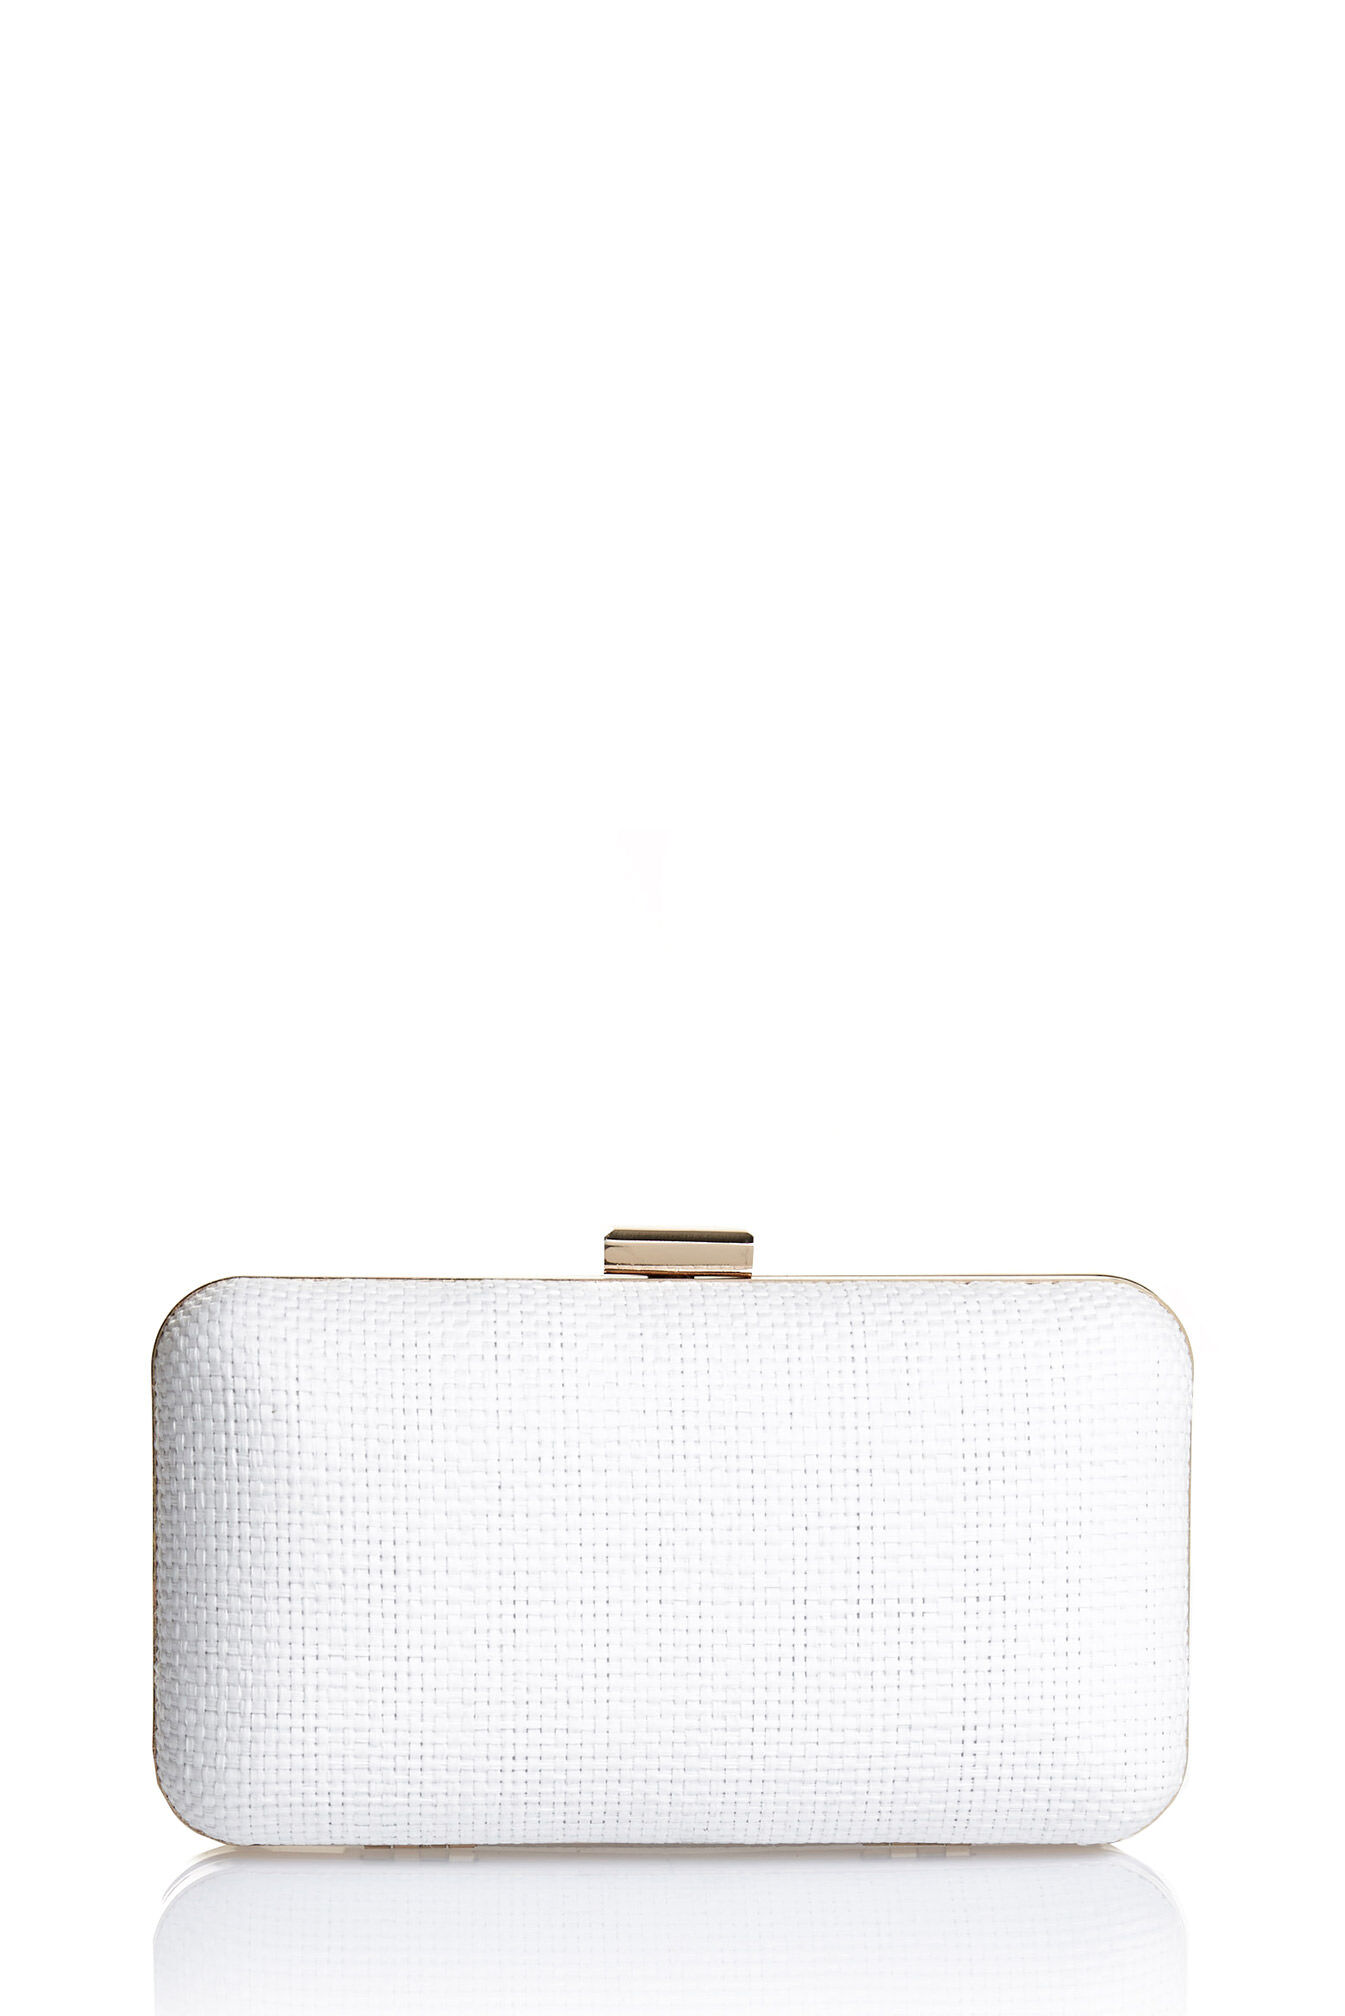 saba female mae box clutch whiteonesize